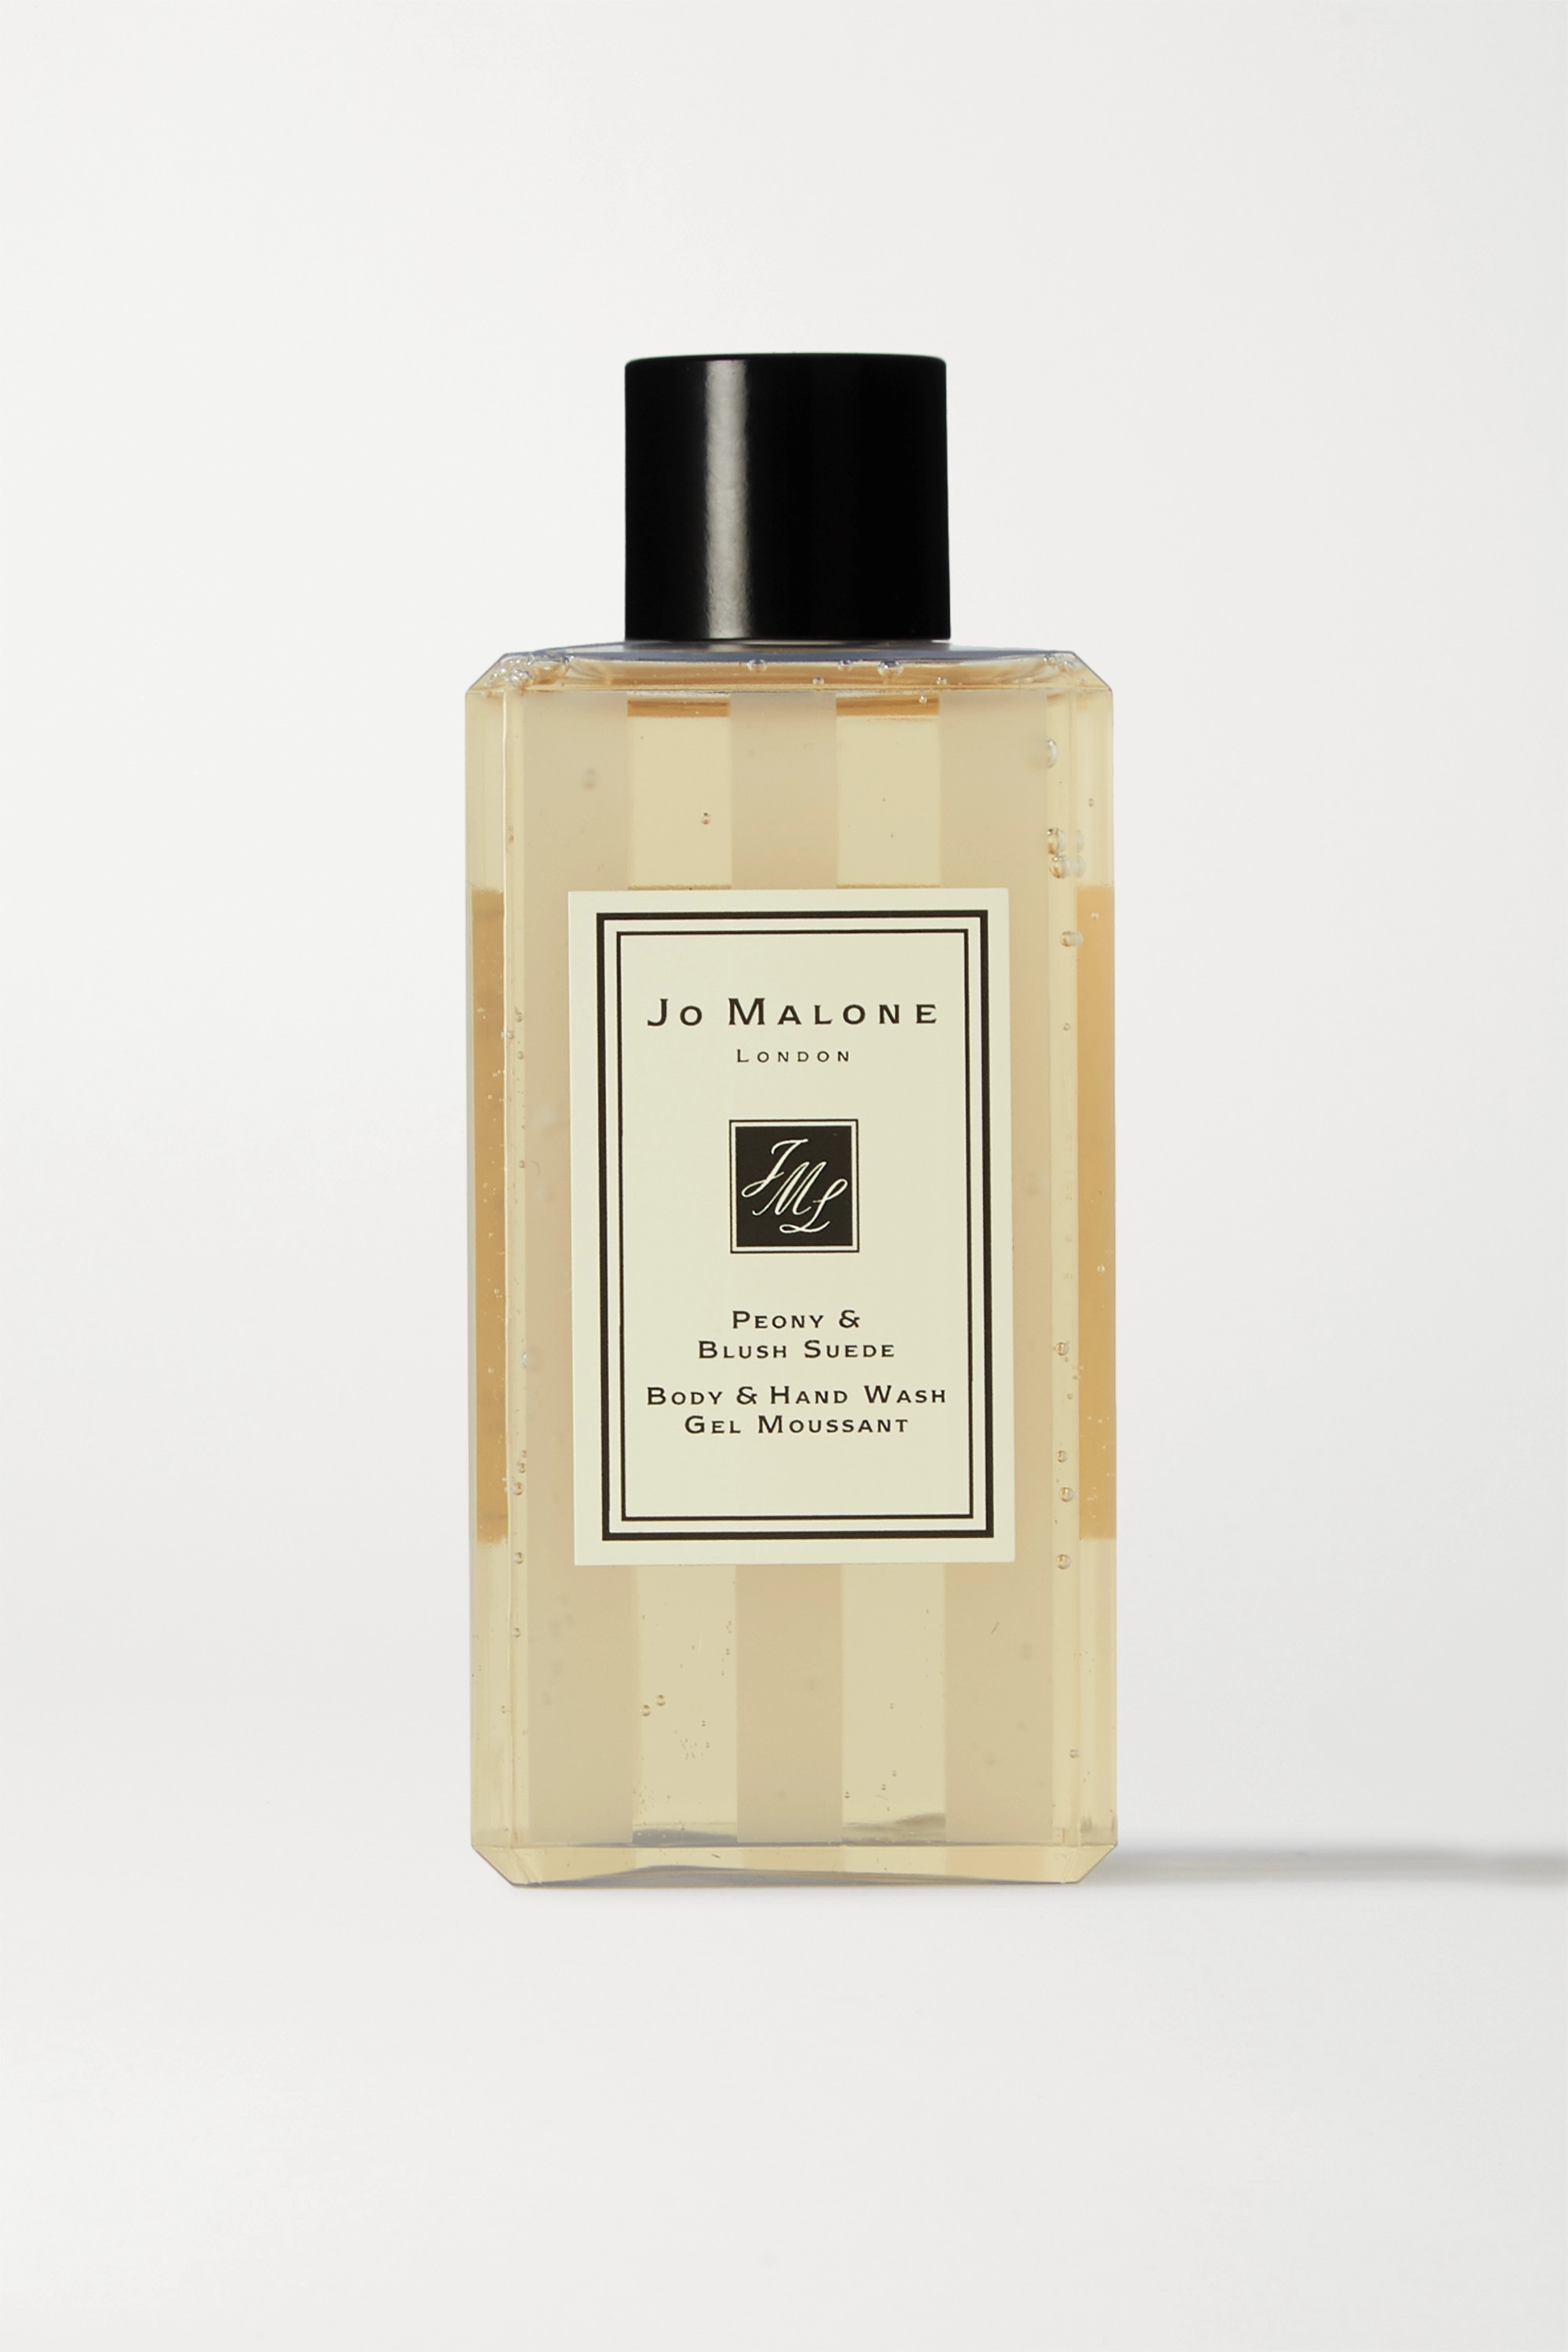 Jo Malone London Peony & Blush Suede Body & Hand Wash, 100ml